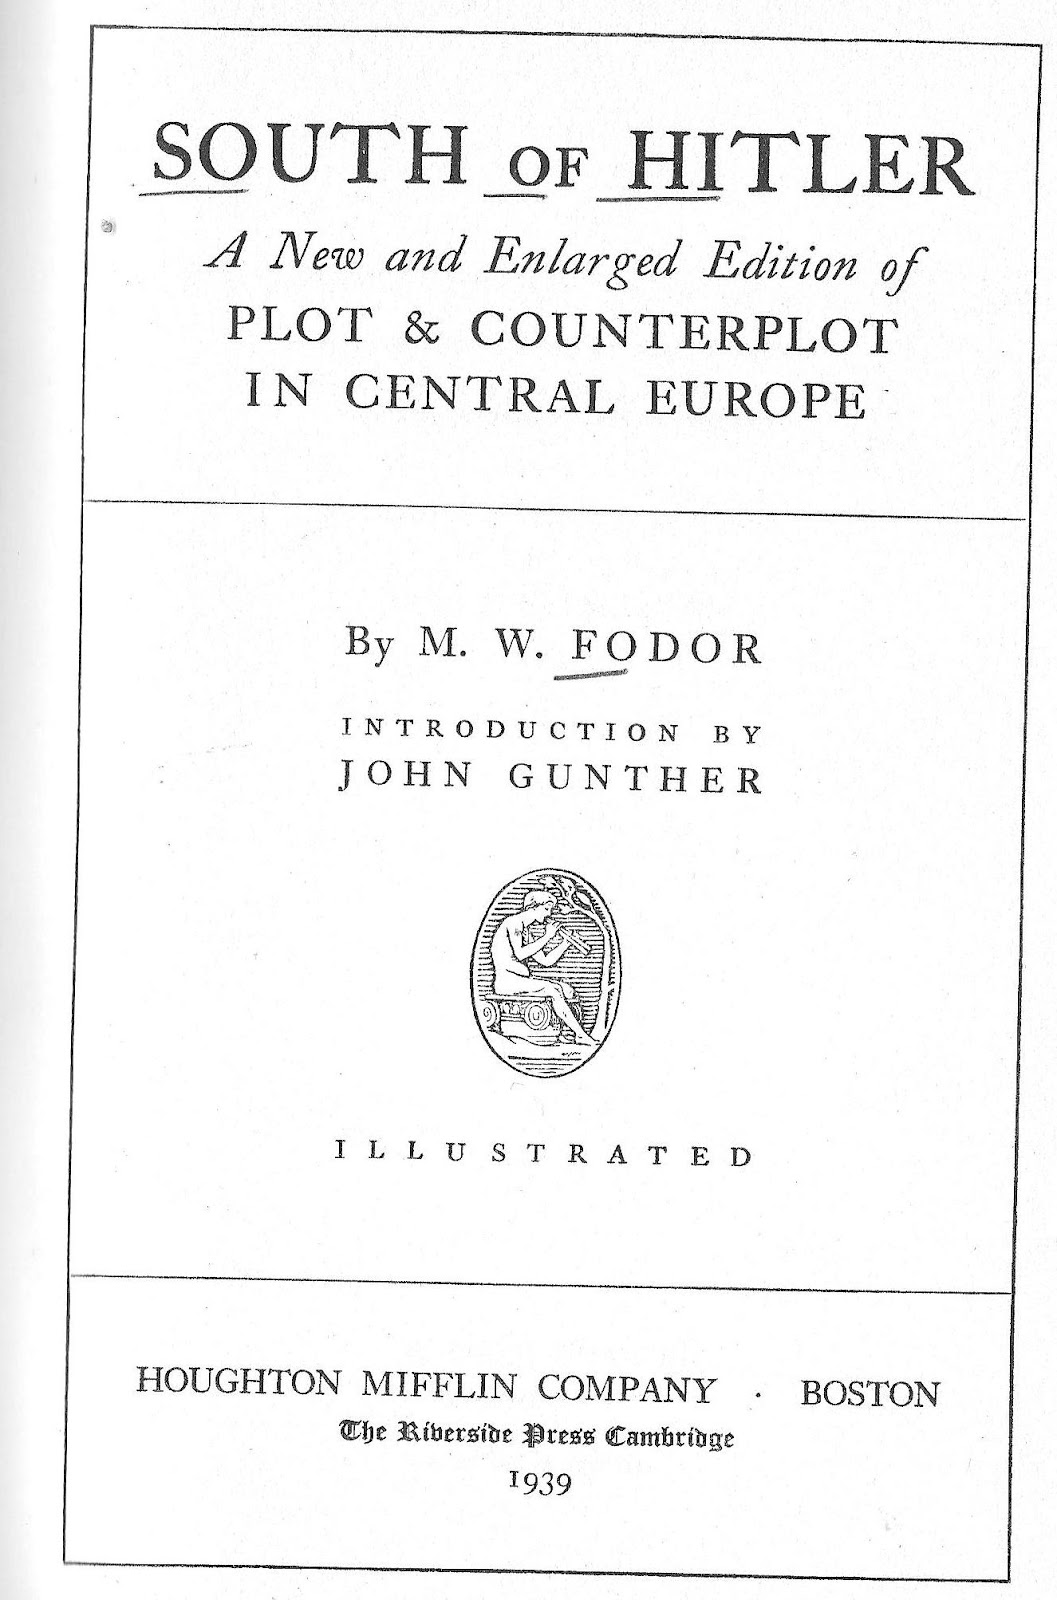 eclectic at best south of hitler by m w fodor a review essay the reasons for the praise of fodor s reporting is evident in his books plot and counterplot in central europe conditions south of hitler